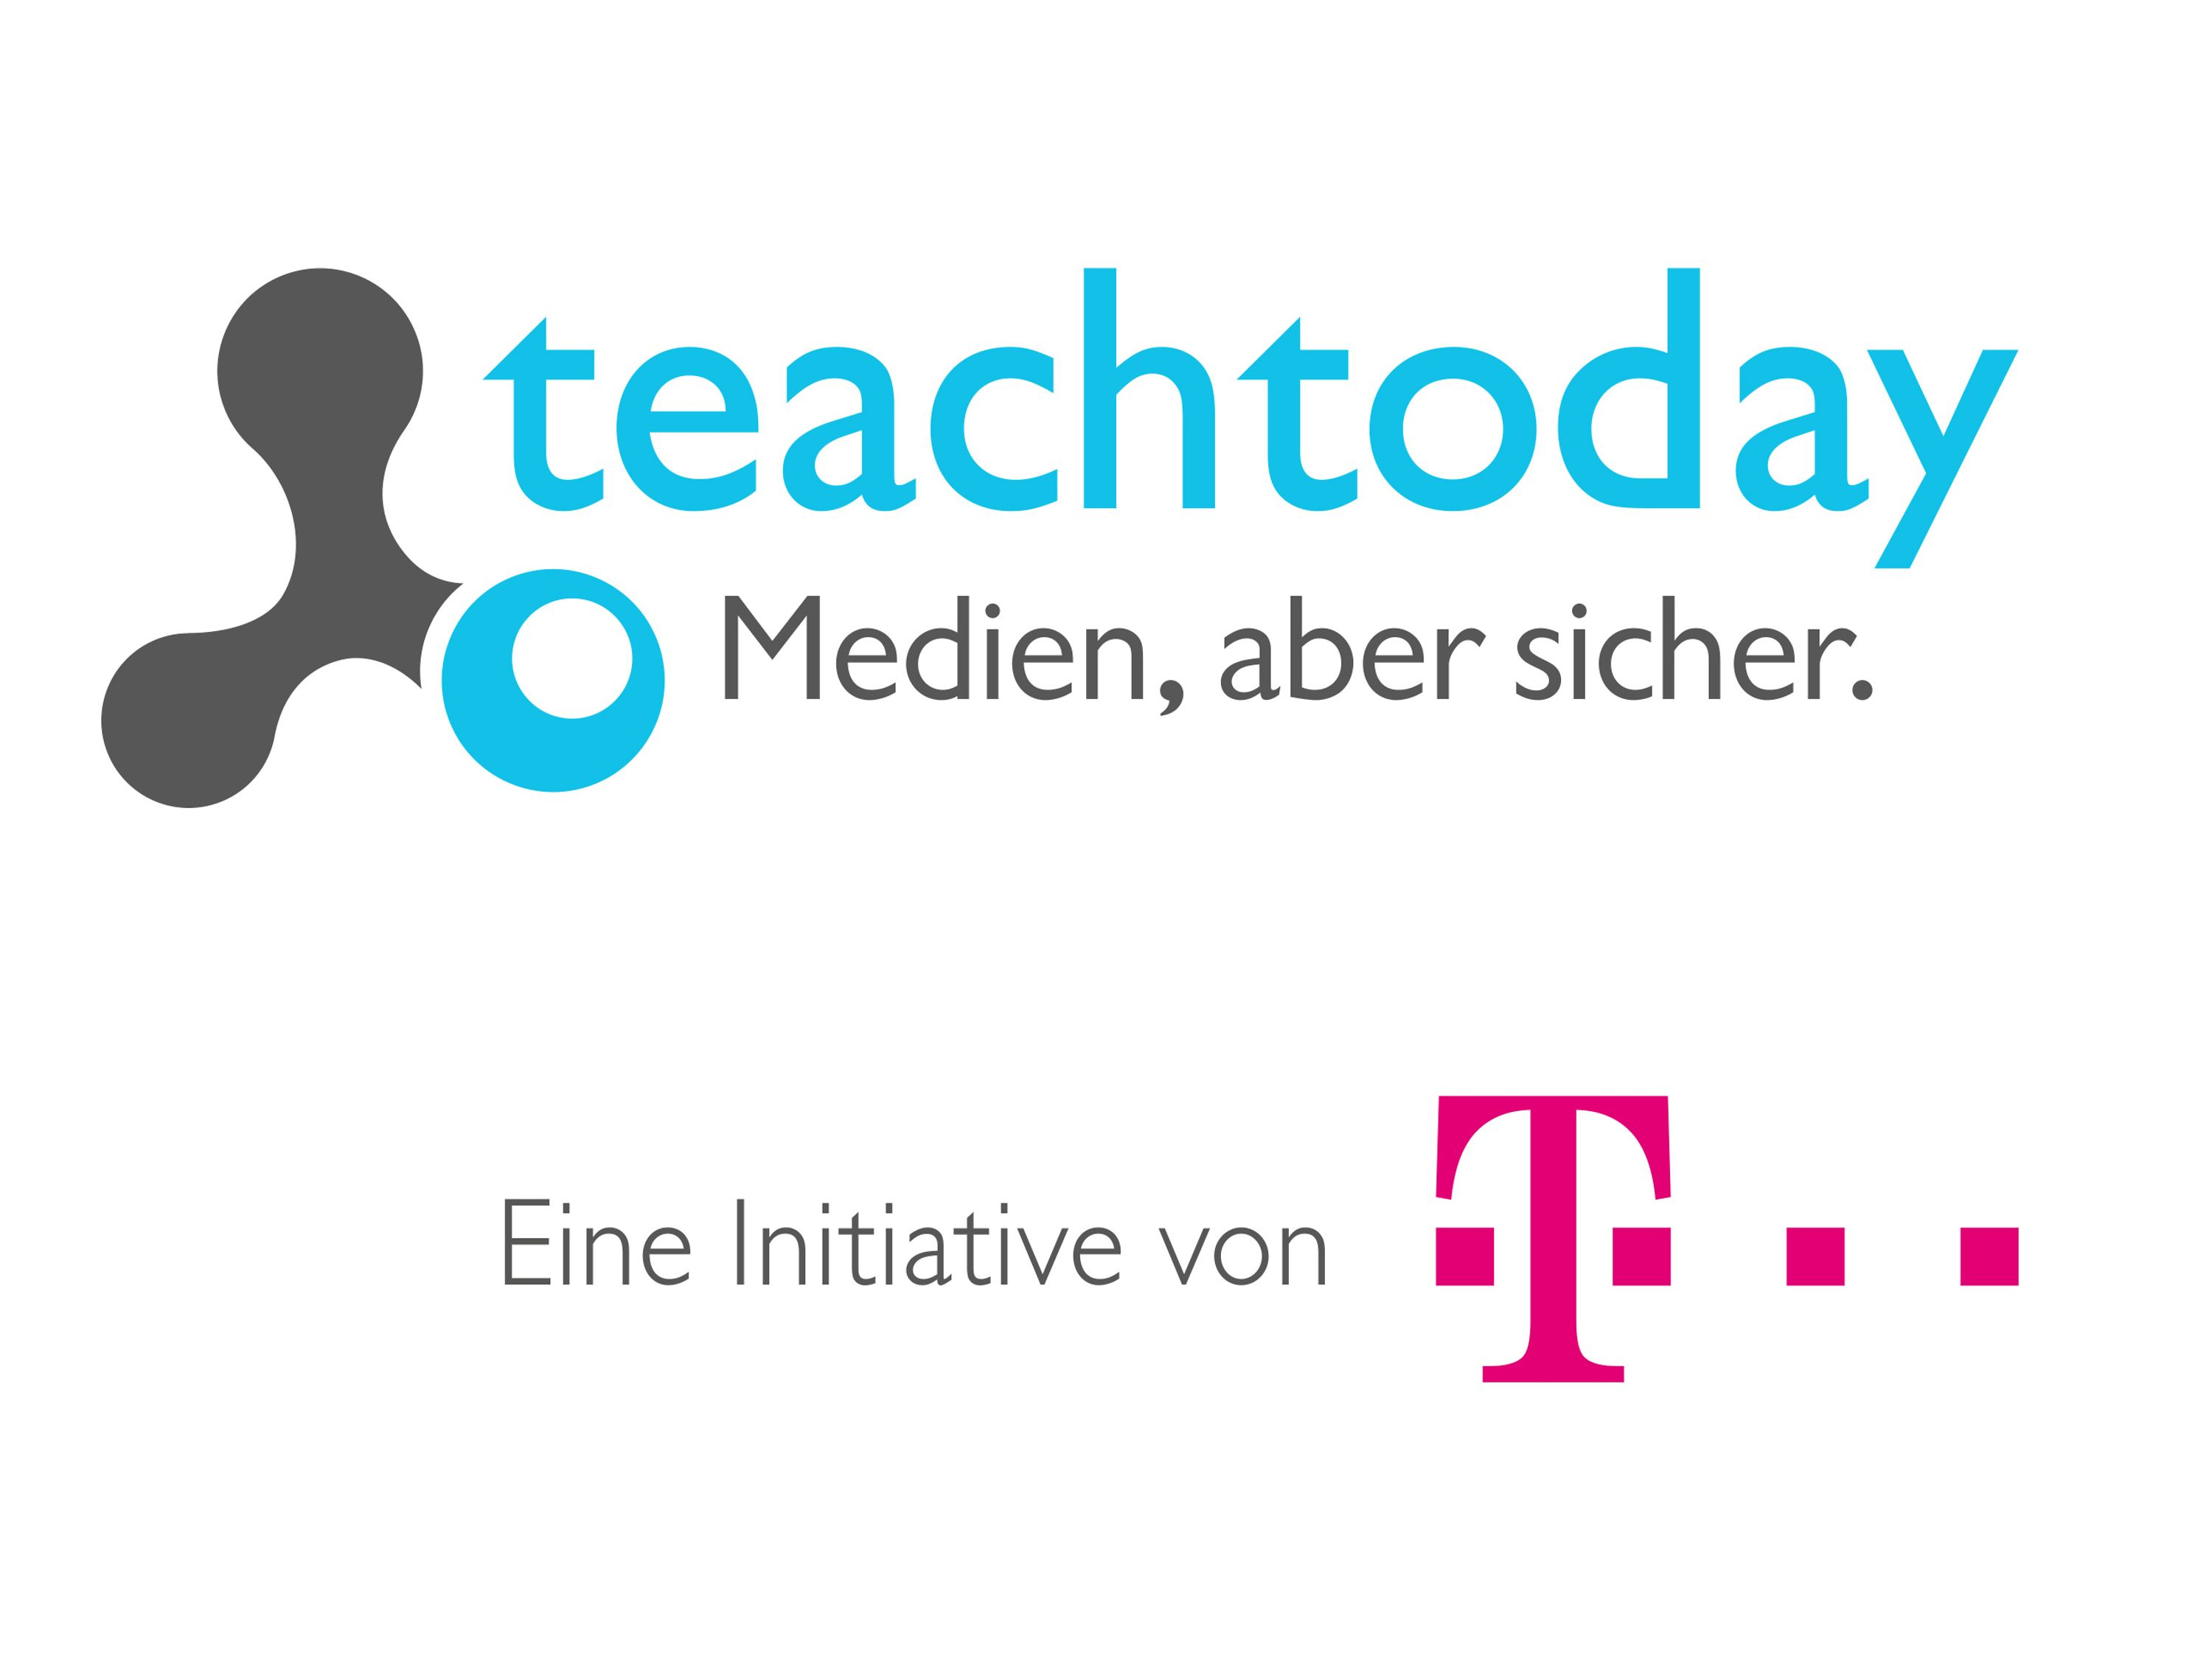 Teachtoday